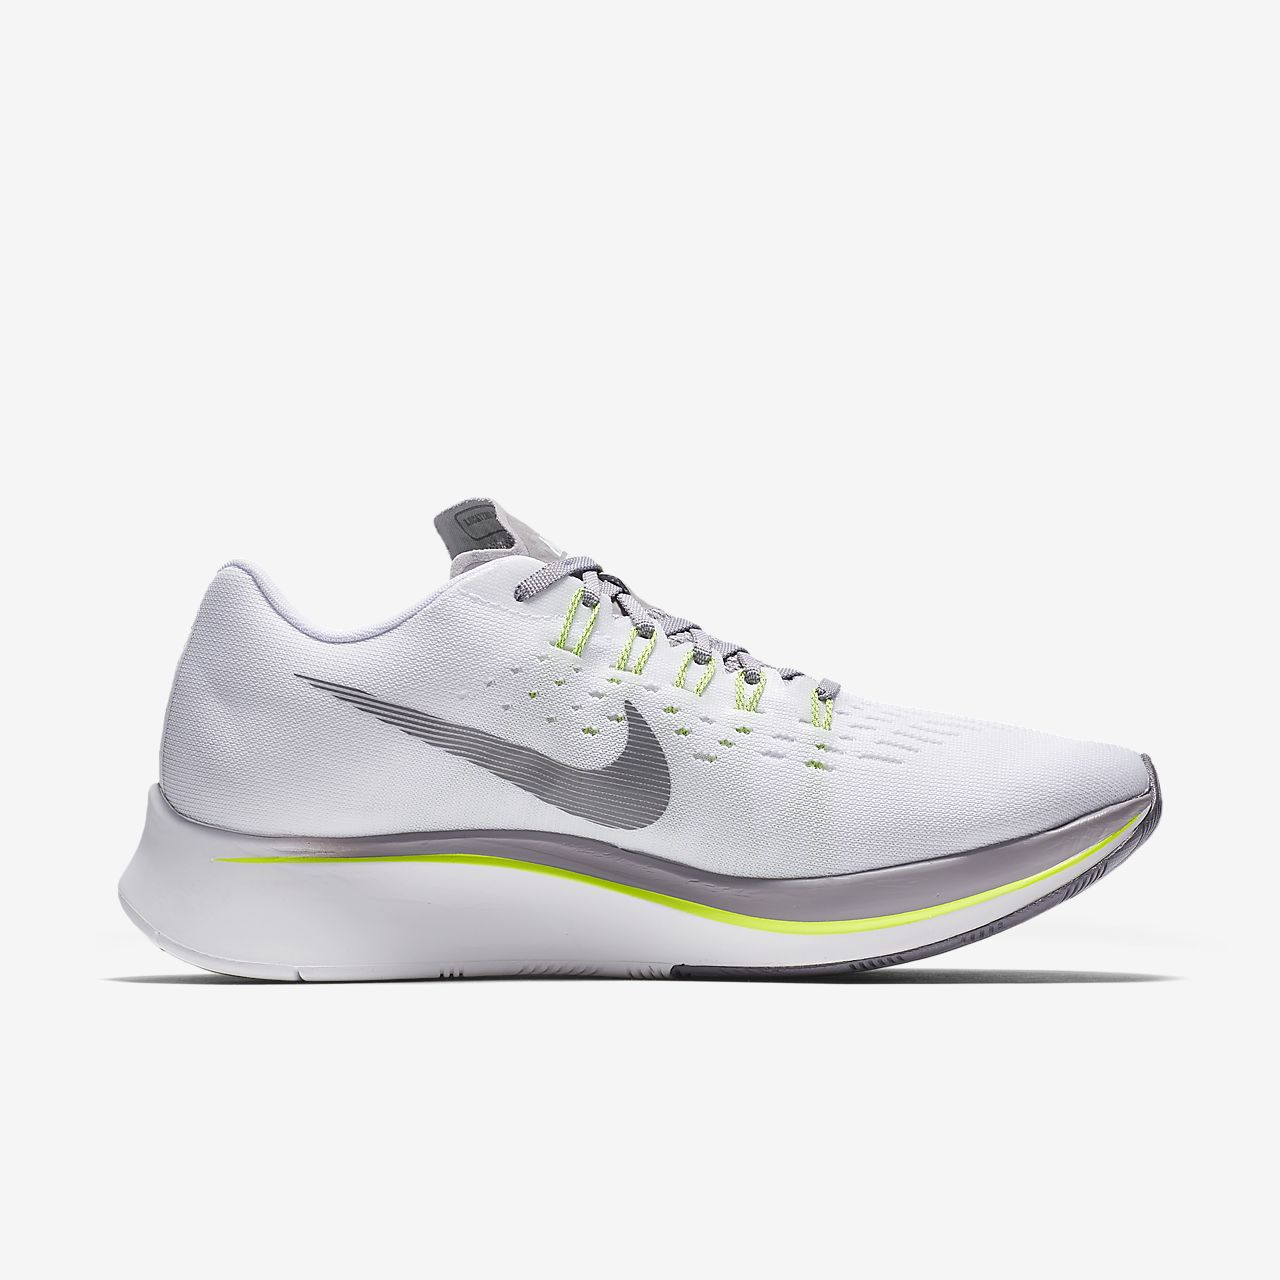 6525498fe77915 Nike Zoom Fly Men s Running Shoe. Nike.com